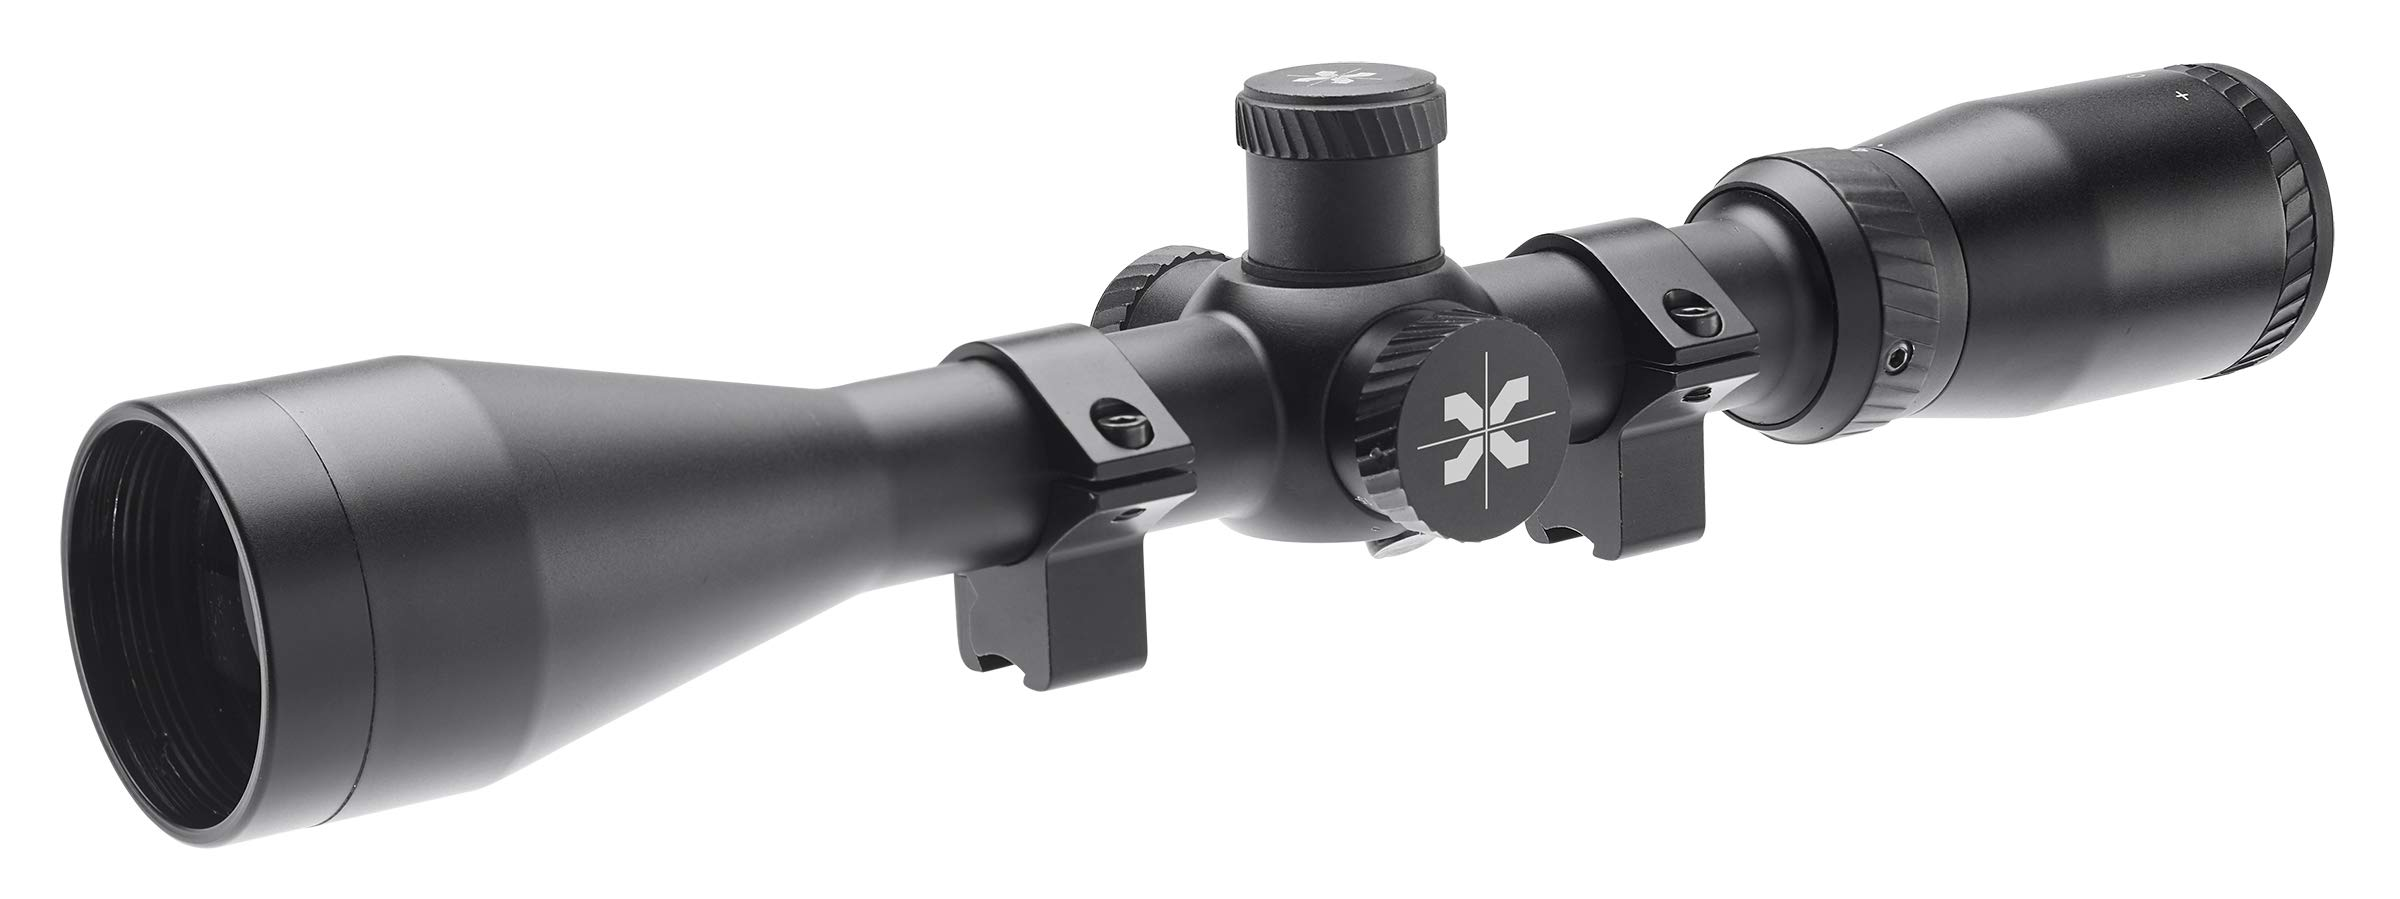 AXEON Optics 4-16x44mm Gauntlet Pellet Gun Air Rifle Scope for Hunting and Target Shooting - Ideal for The Umarex Gauntlet Air Gun by AXEON